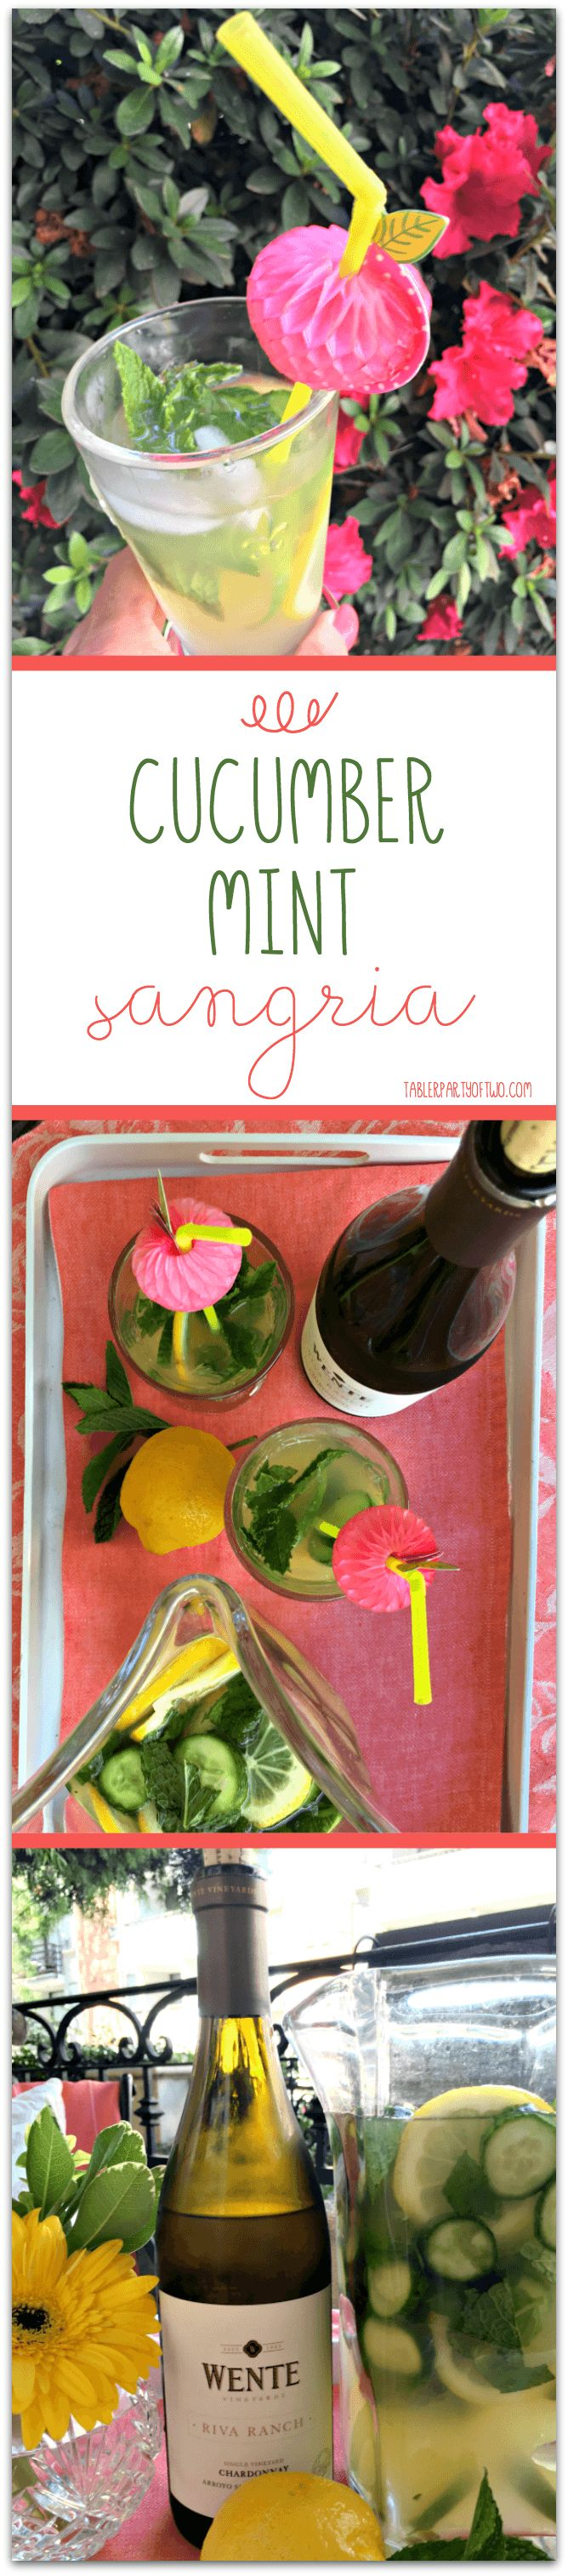 OMG... you MUST try this crisp and light Cucumber Mint Sangria! Made with dry chardonnay, citrus, cucumber and mint, it's perfect for entertaining or relaxing on a warm, summer evening. Tabler Party Of Two | TablerPartyOfTwo.com